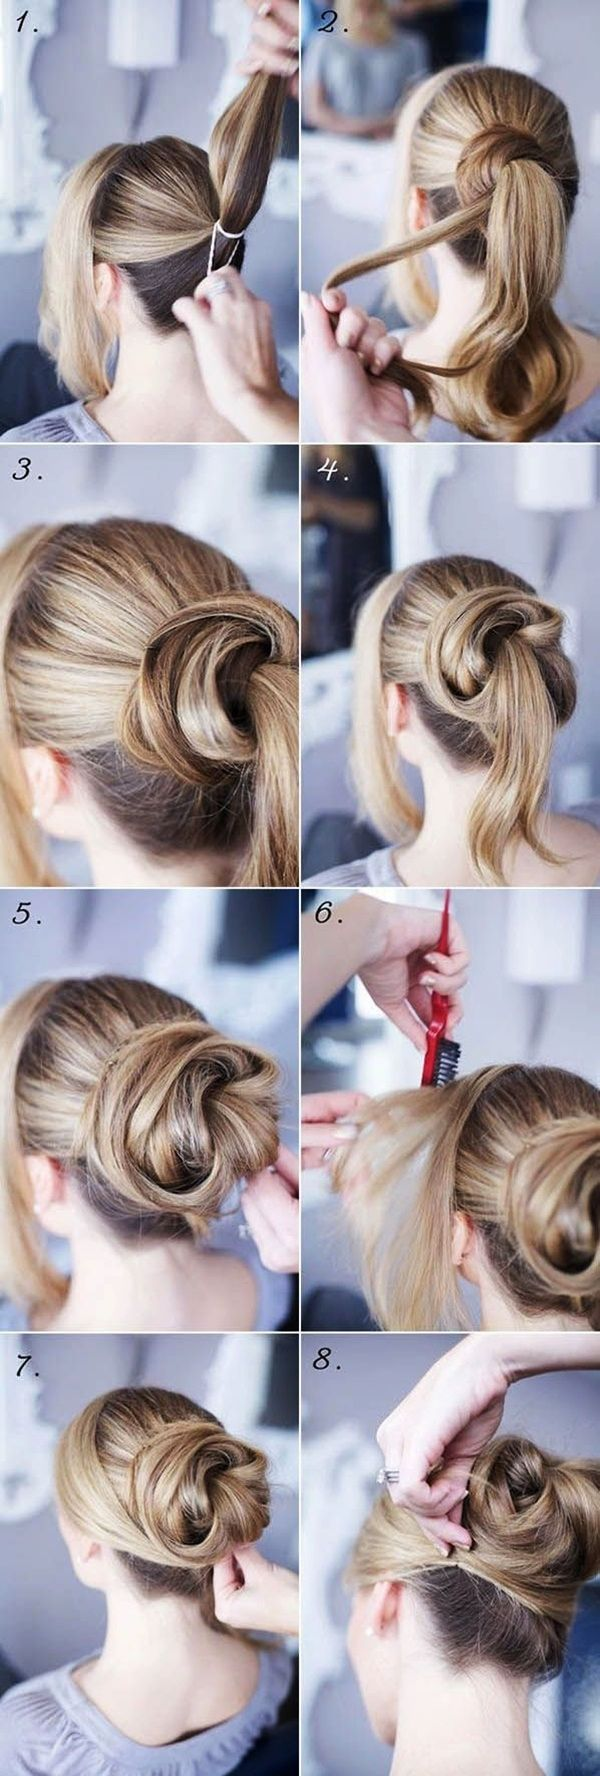 15 Easy Step By Step Hairstyles for Long Hair | Updo hairstyles tutorials, Hair styles, Long ...